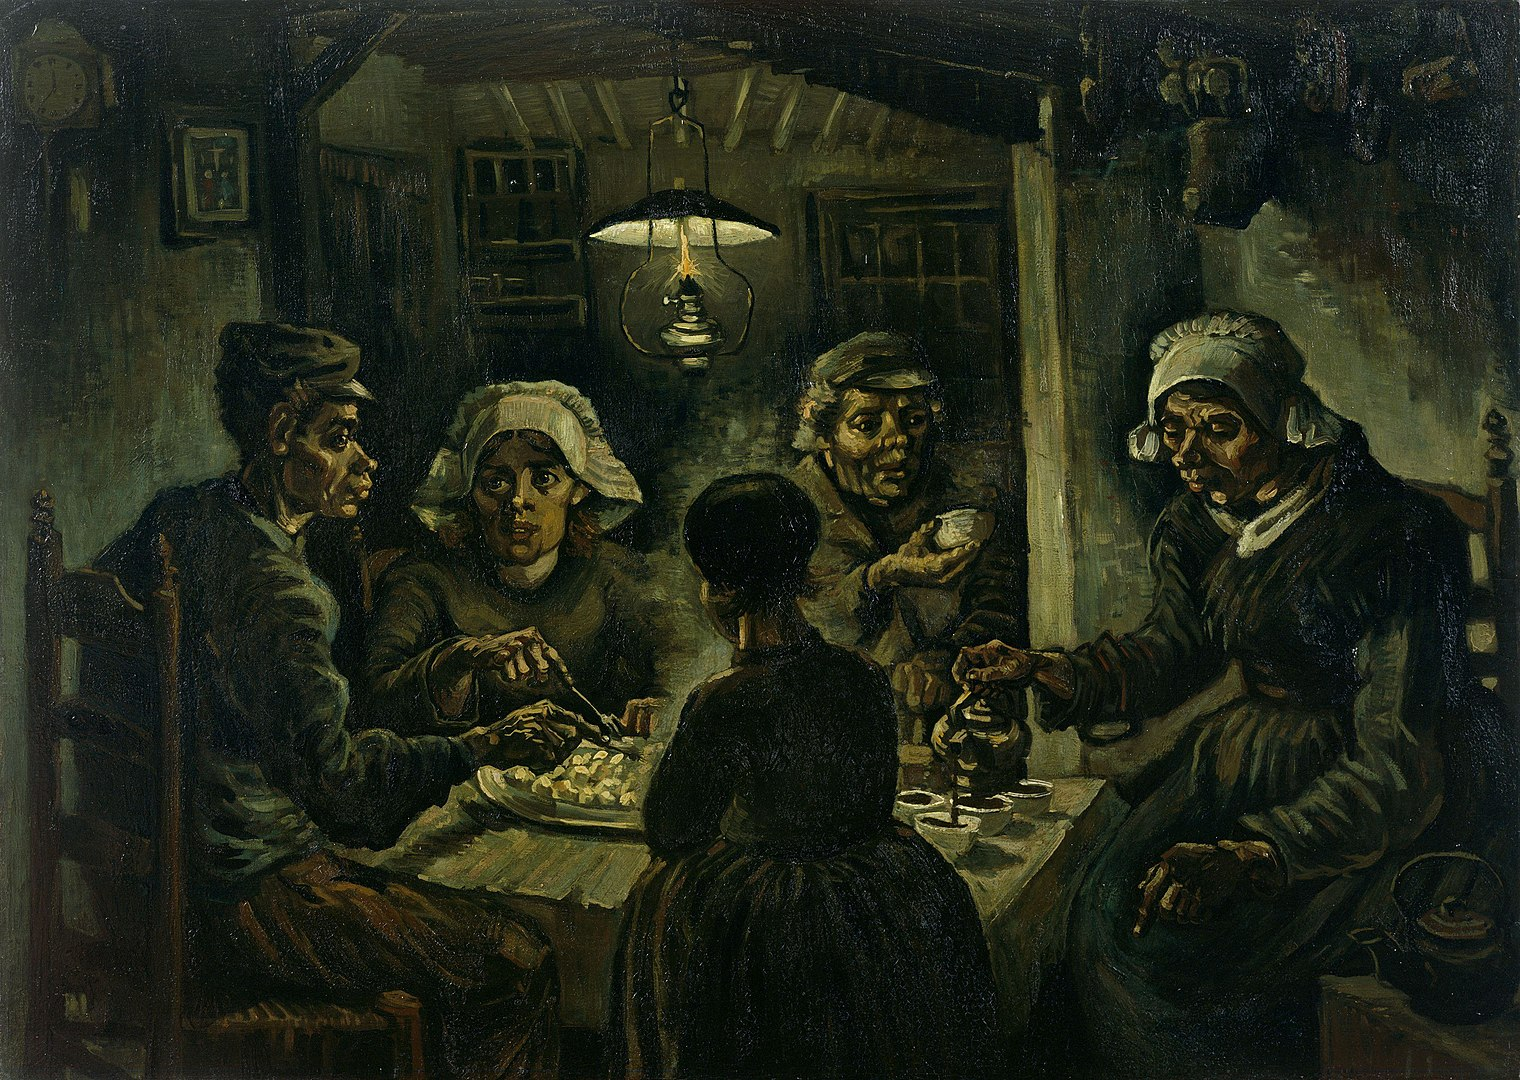 """An image of the painting by Vincent Van Gogh called """"The Potato Eaters"""". Three women and two men are shown sitting around a table eating dinner. Their faces are painted in an exaggerated way so that their chins and noses are rounded and bulbuous. They have gnarled hands and bags under their eyes. One woman, sitting at one end of the table to the far right, is pouring coffee or tea into mugs. On her right is a man looking at her and holding another mug up. Next to him is another woman who is cutting food on her plate and looking at the man next to her, who is at the far left of the painting. This man at the far left seems to be looking at the woman on the opposite end of the table or is lost in thought. He has a fork in his hand reaching out to the plate of food in front of him. There is a woman sitting to his right, with her back to the viewer. They are all sitting around a plain and rough looking table, in a room with a single light above them. The overall effect shows a fairly somber group of people sharing a very simple meal together."""